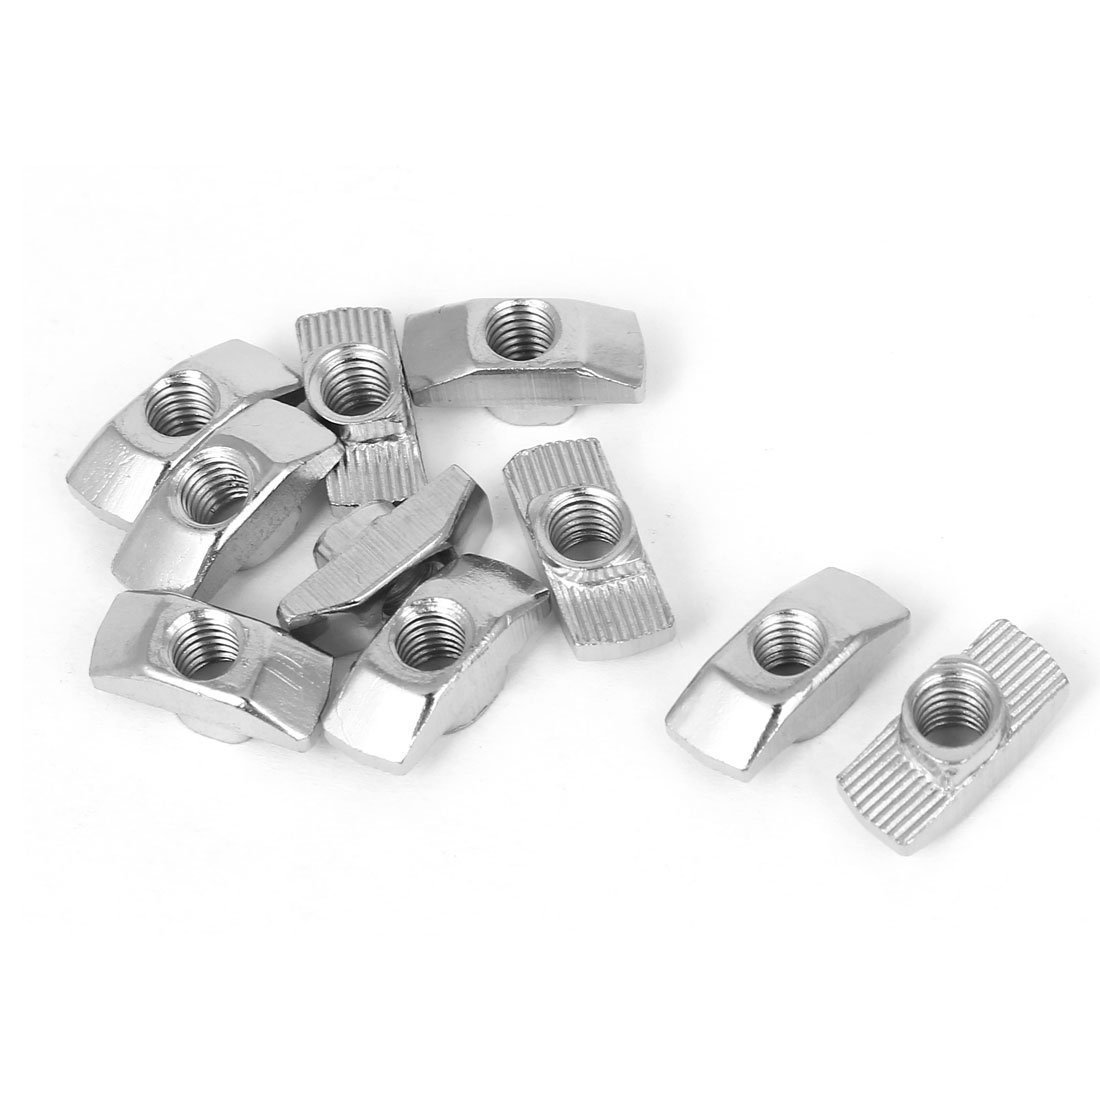 Dragonmarts BISS Pack of 10 Uxcell a16050300ux0561 4040 Series Aluminum Profiles Extrusion T Slot Nuts M6 Drop in T-Nuts